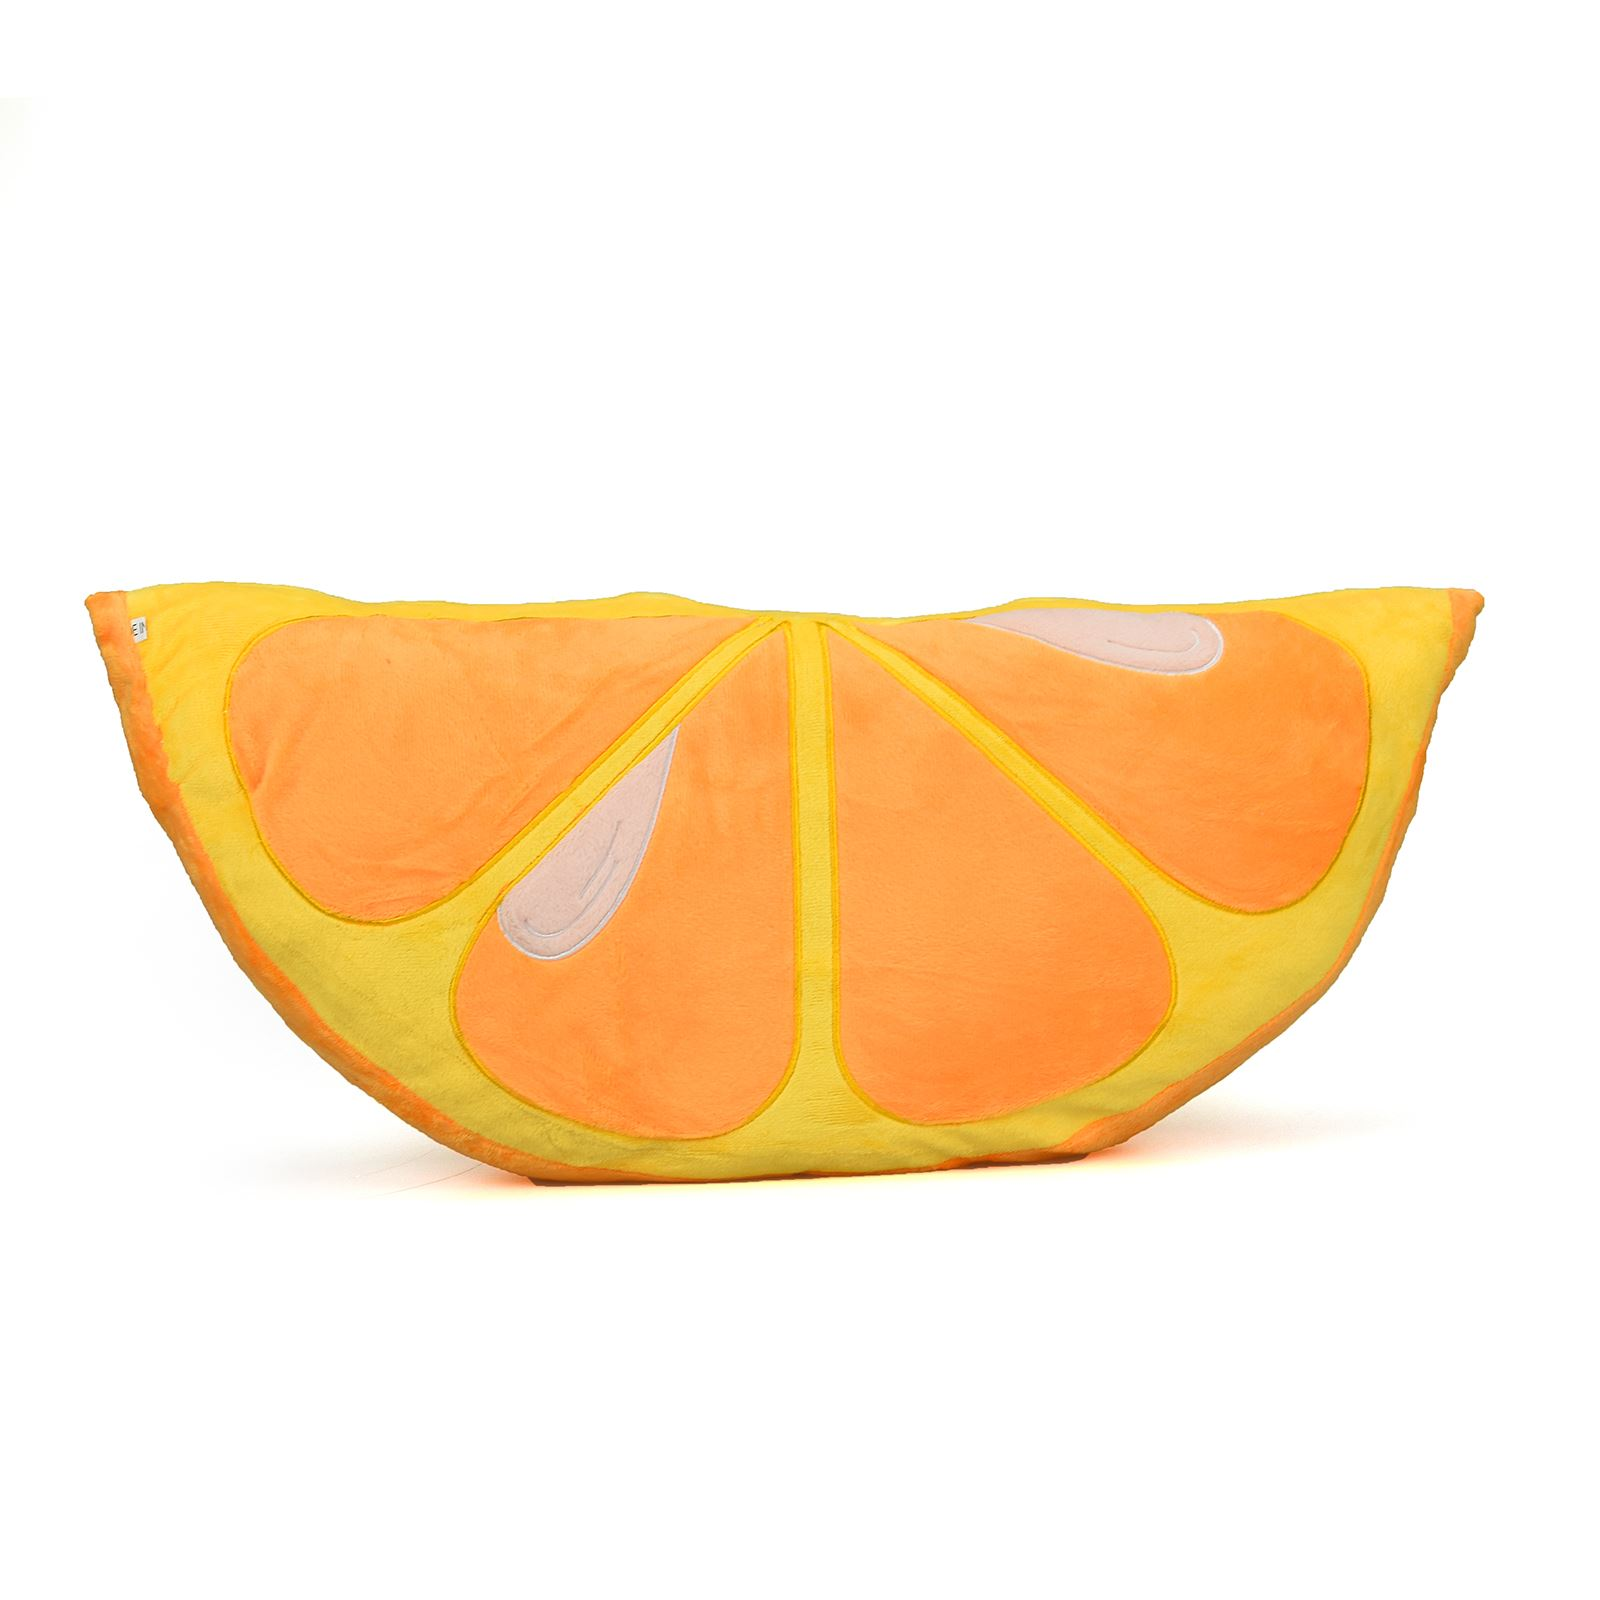 Fruit Design Soft Cushion Sofa Throw Pillow Round Seat Couch Chair